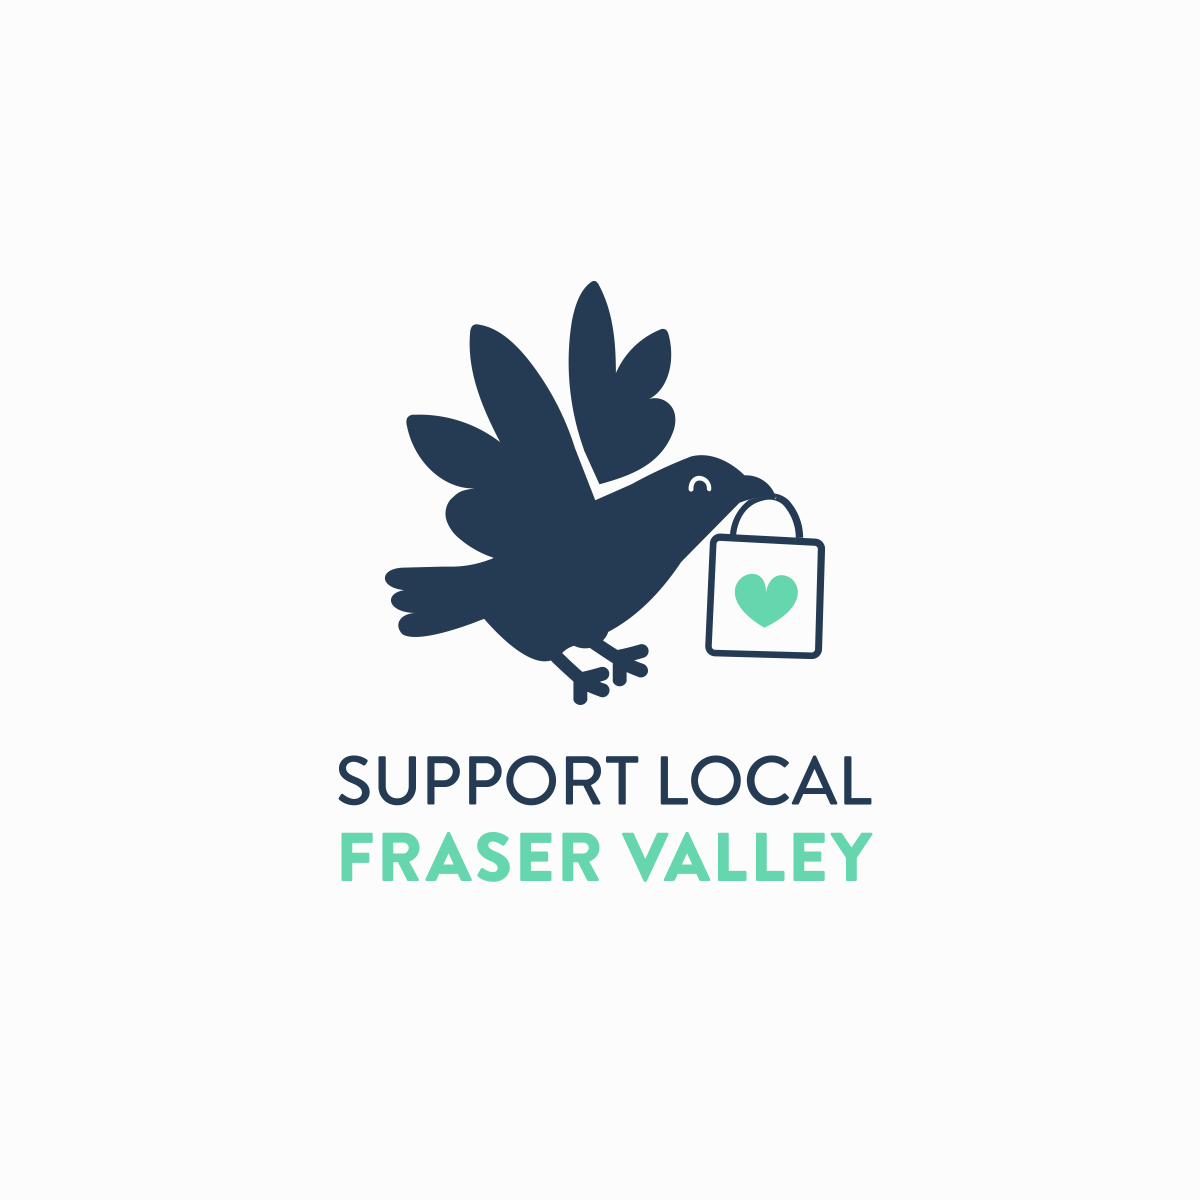 Support Local Fraser Valley Logo by Taylor Krulicki